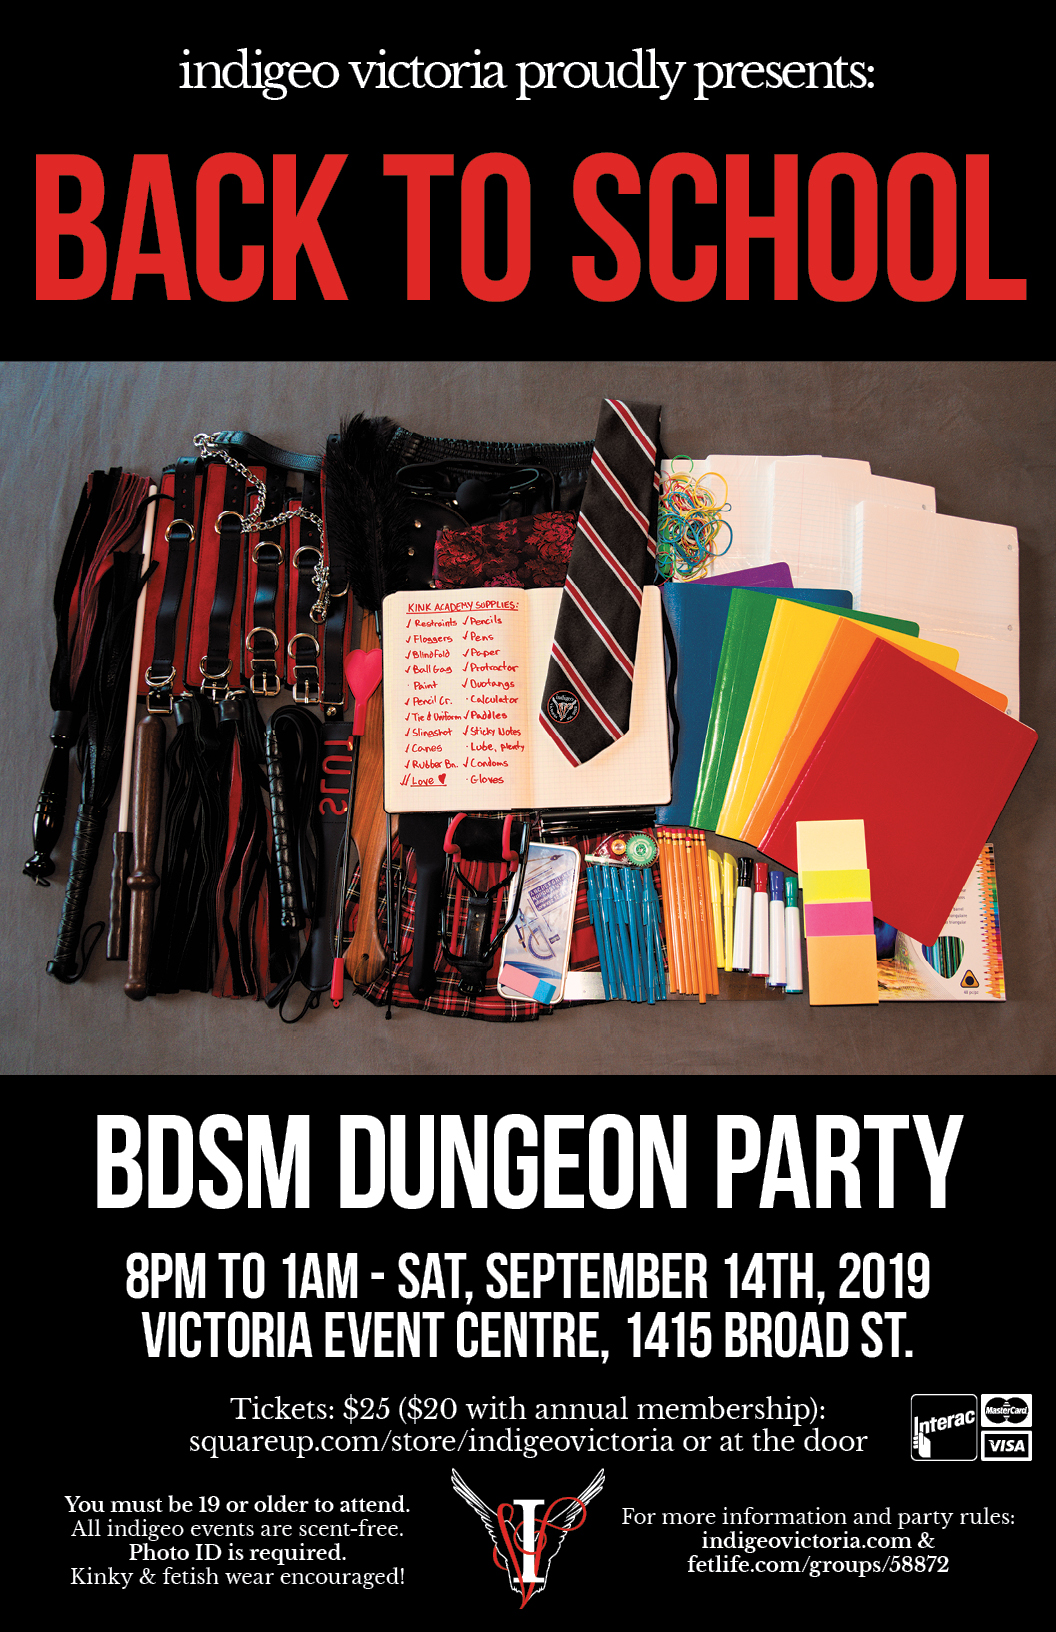 Indigeo Back to School Dungeon Party, Saturday, September 14th, 2019. 8PM to 1AM. Victoria Event Center, 1415 Broad Street, Victoria BC. $20 Members, $25 non-members, $15 for a membership. 19+ Government ID required.